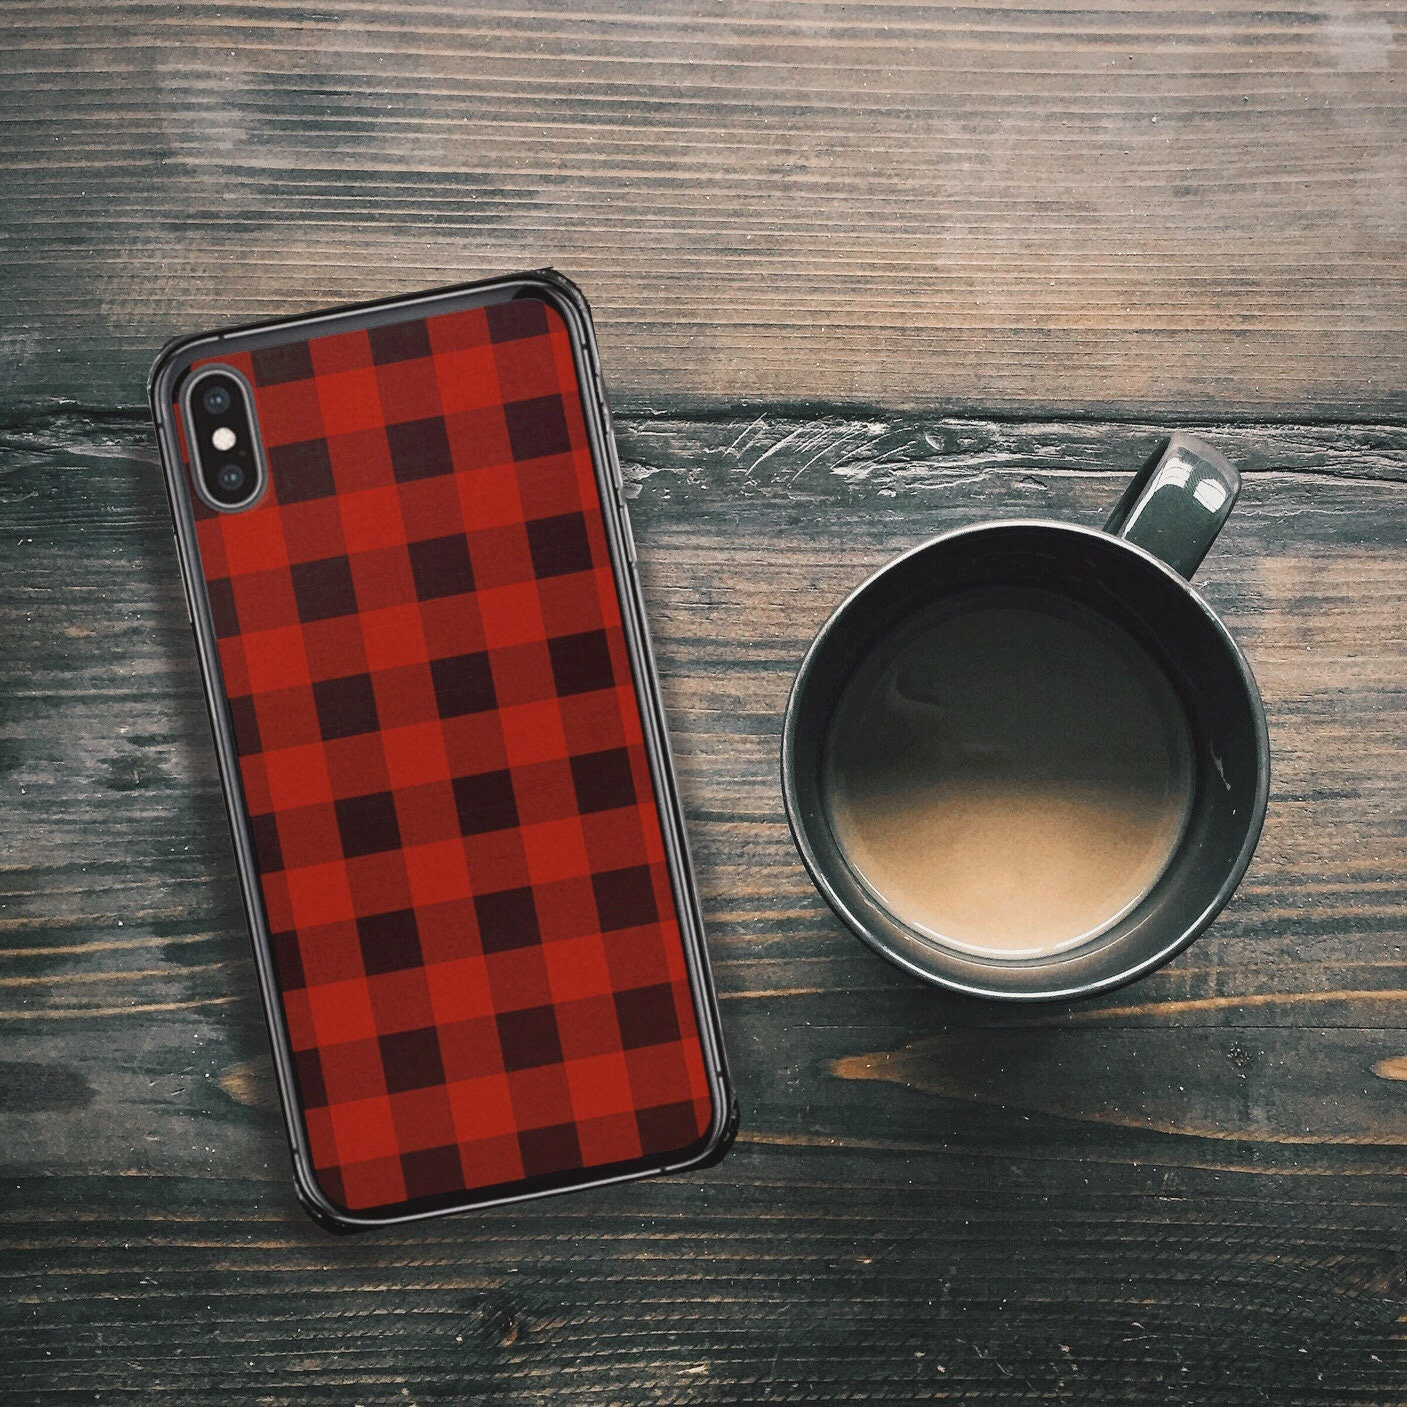 best service cbfc5 50646 Plaid iPhone 7 Case Red Buffalo Check iPhone 6 Case Buffalo Plaid iPhone  Case Buffalo Check iPhone Case Plaid iPhone 7 Plus Case